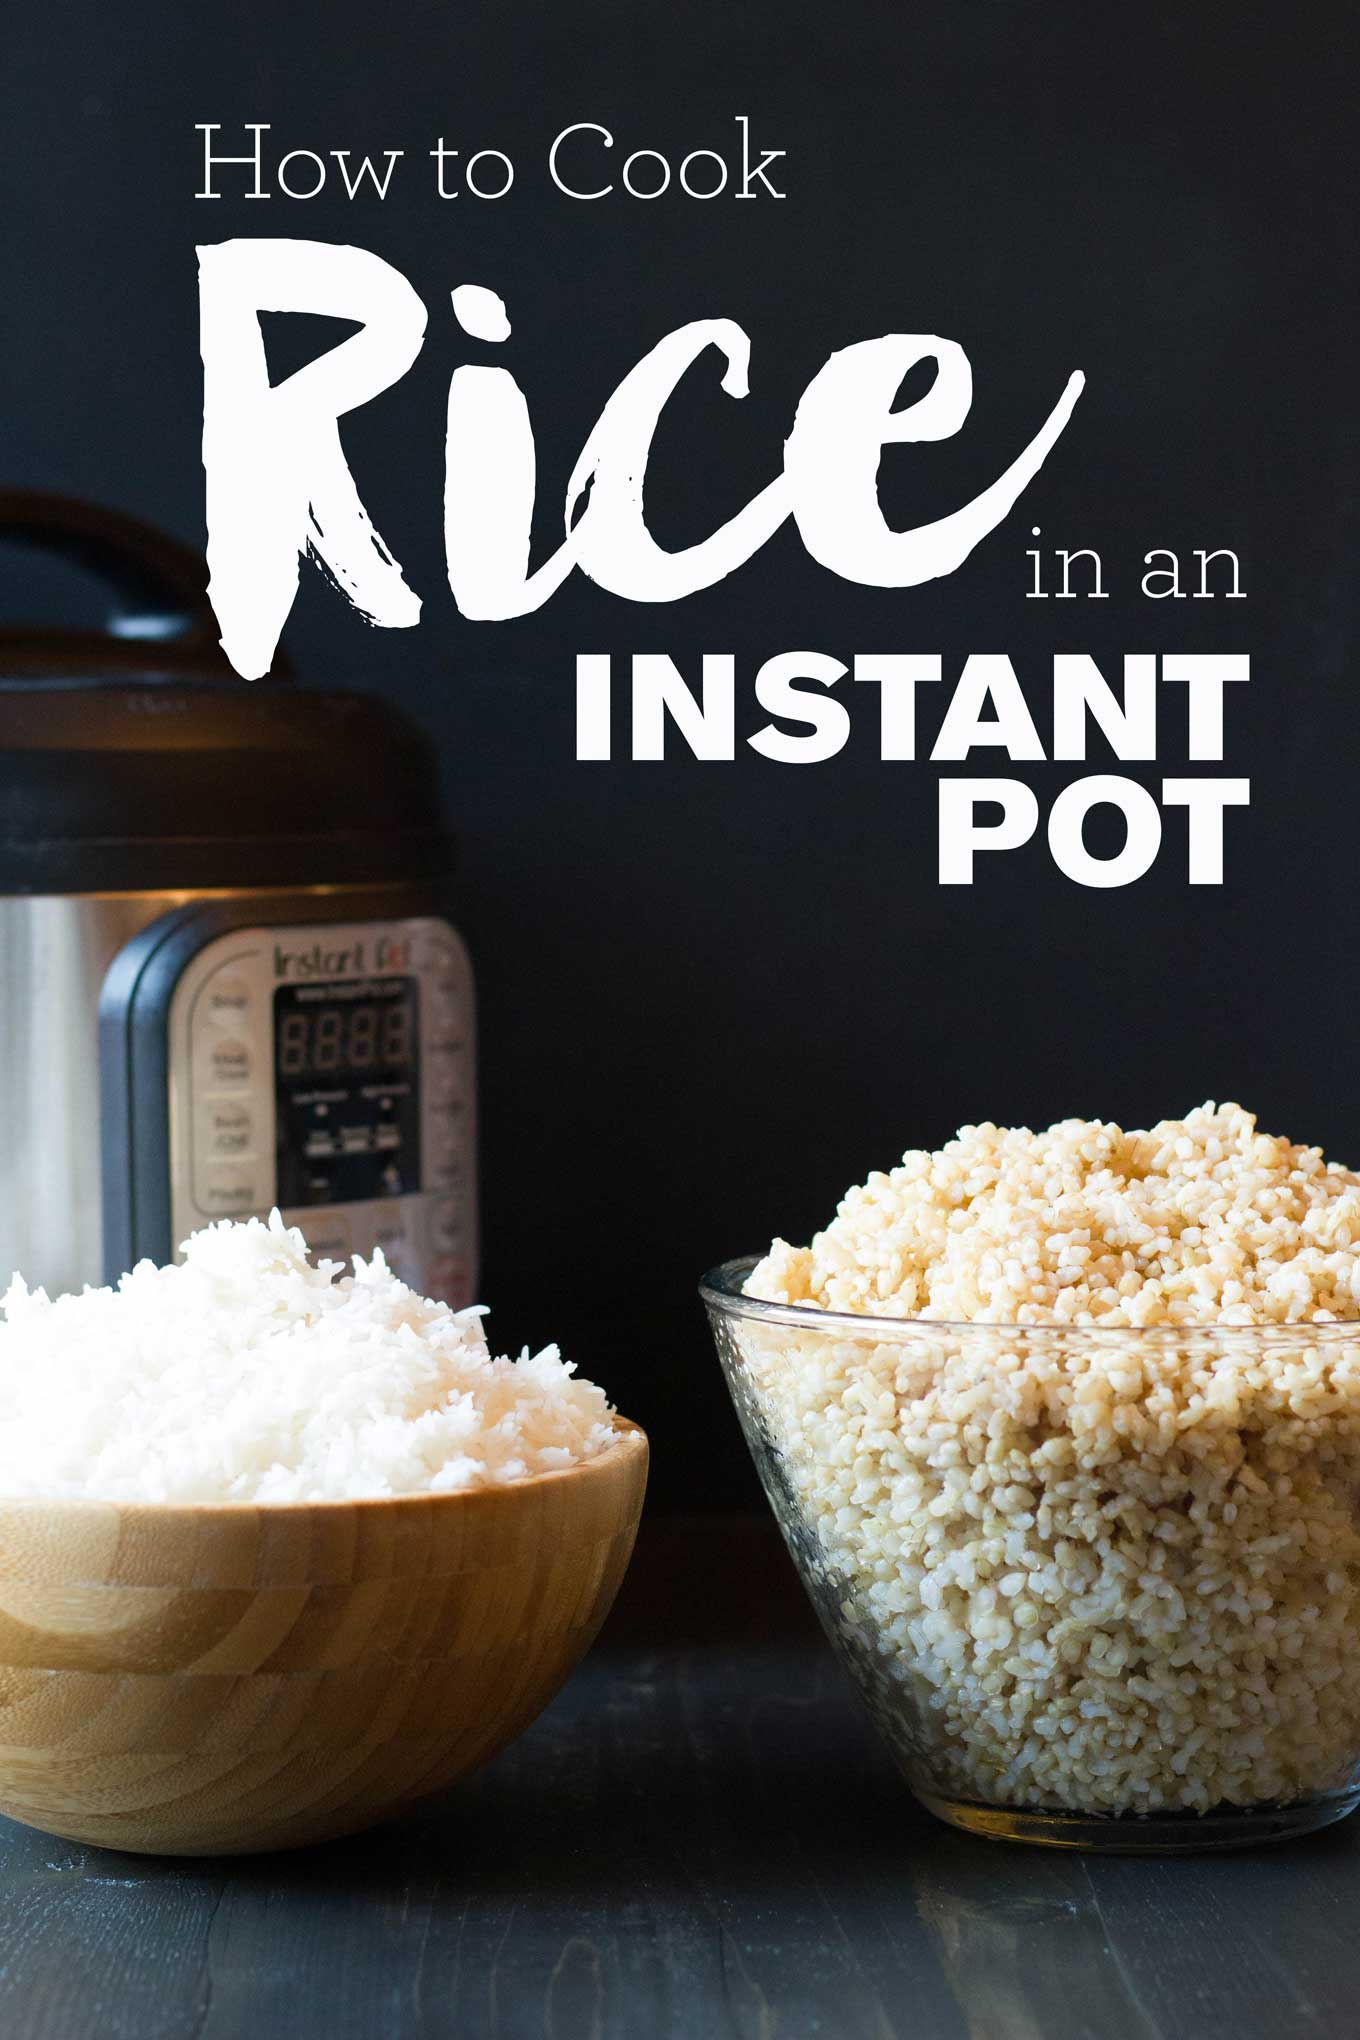 home About Contact Do the Damn Dishes Recipes & Tips How to Cook Rice in an Instant Pot Bobby Beth Ashley KimT Veronica Pat Gloria Gloria Cheryl Merrill Kandy Beth Barbara Skalberg Beth Barbara Skalberg Beth katelyn Beth Judith Carmen Brining Robyn Nicolena Bryden